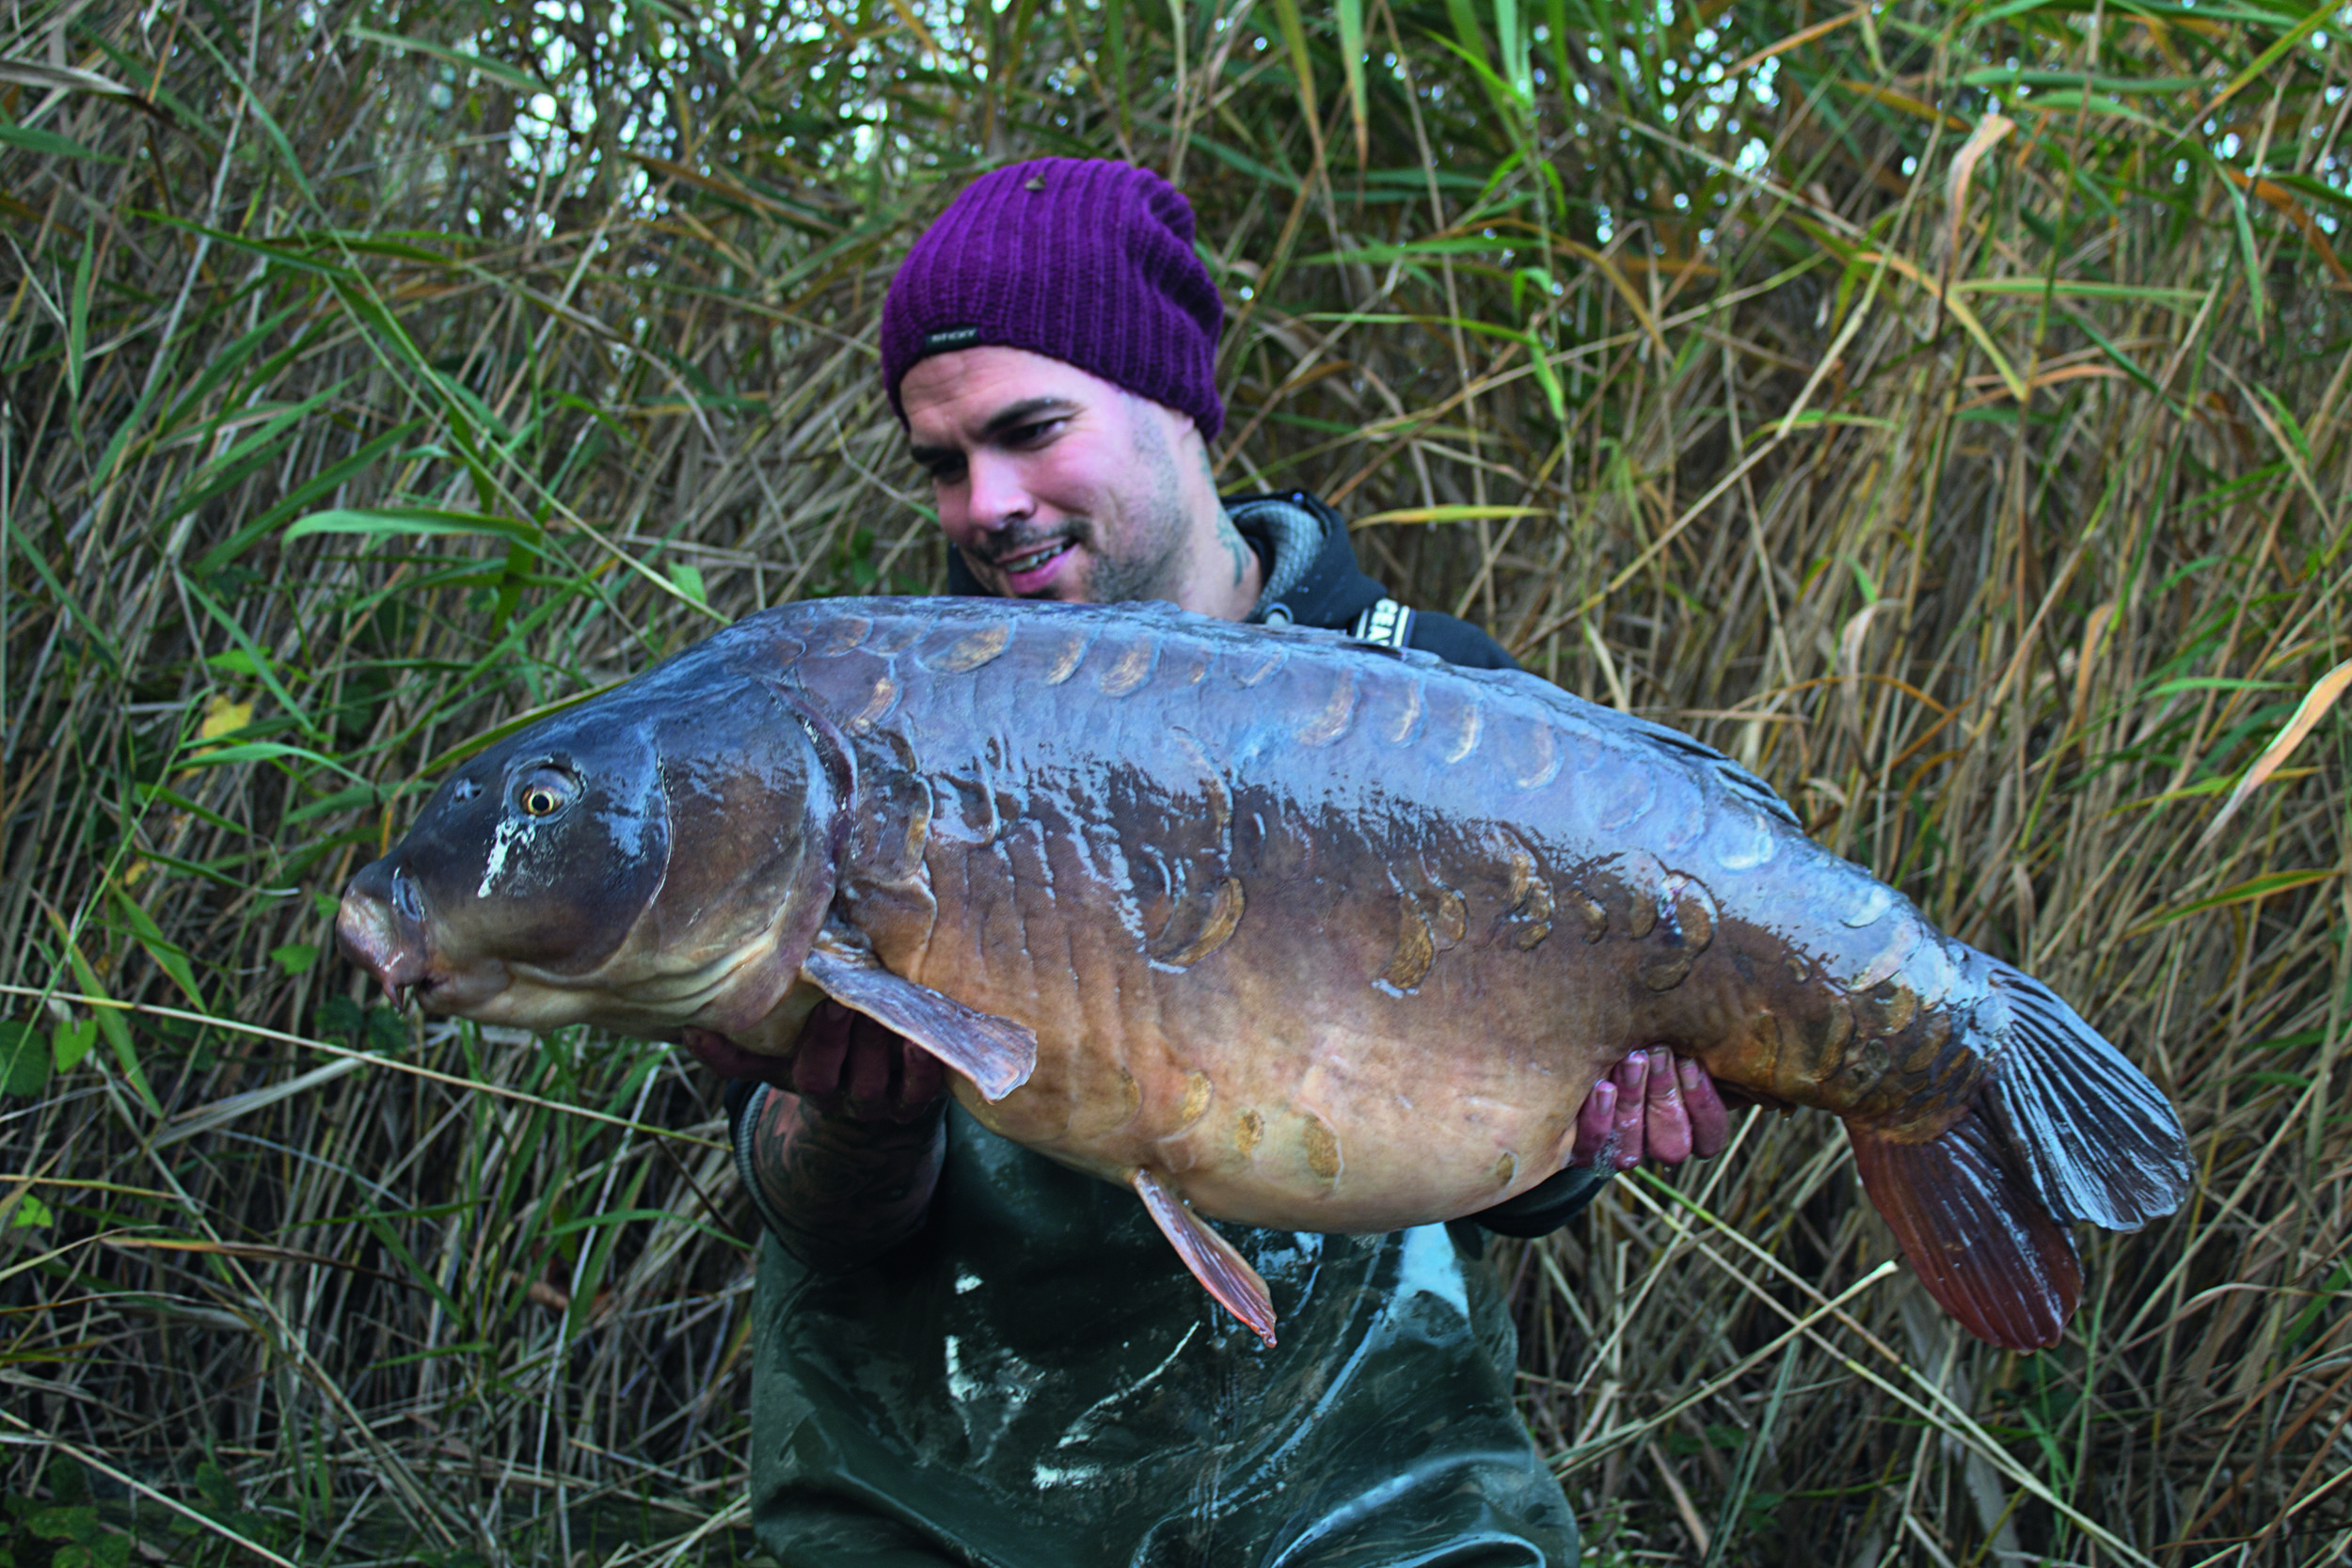 The awesome old Big Lin at 39lb 9oz, a great end to the season.